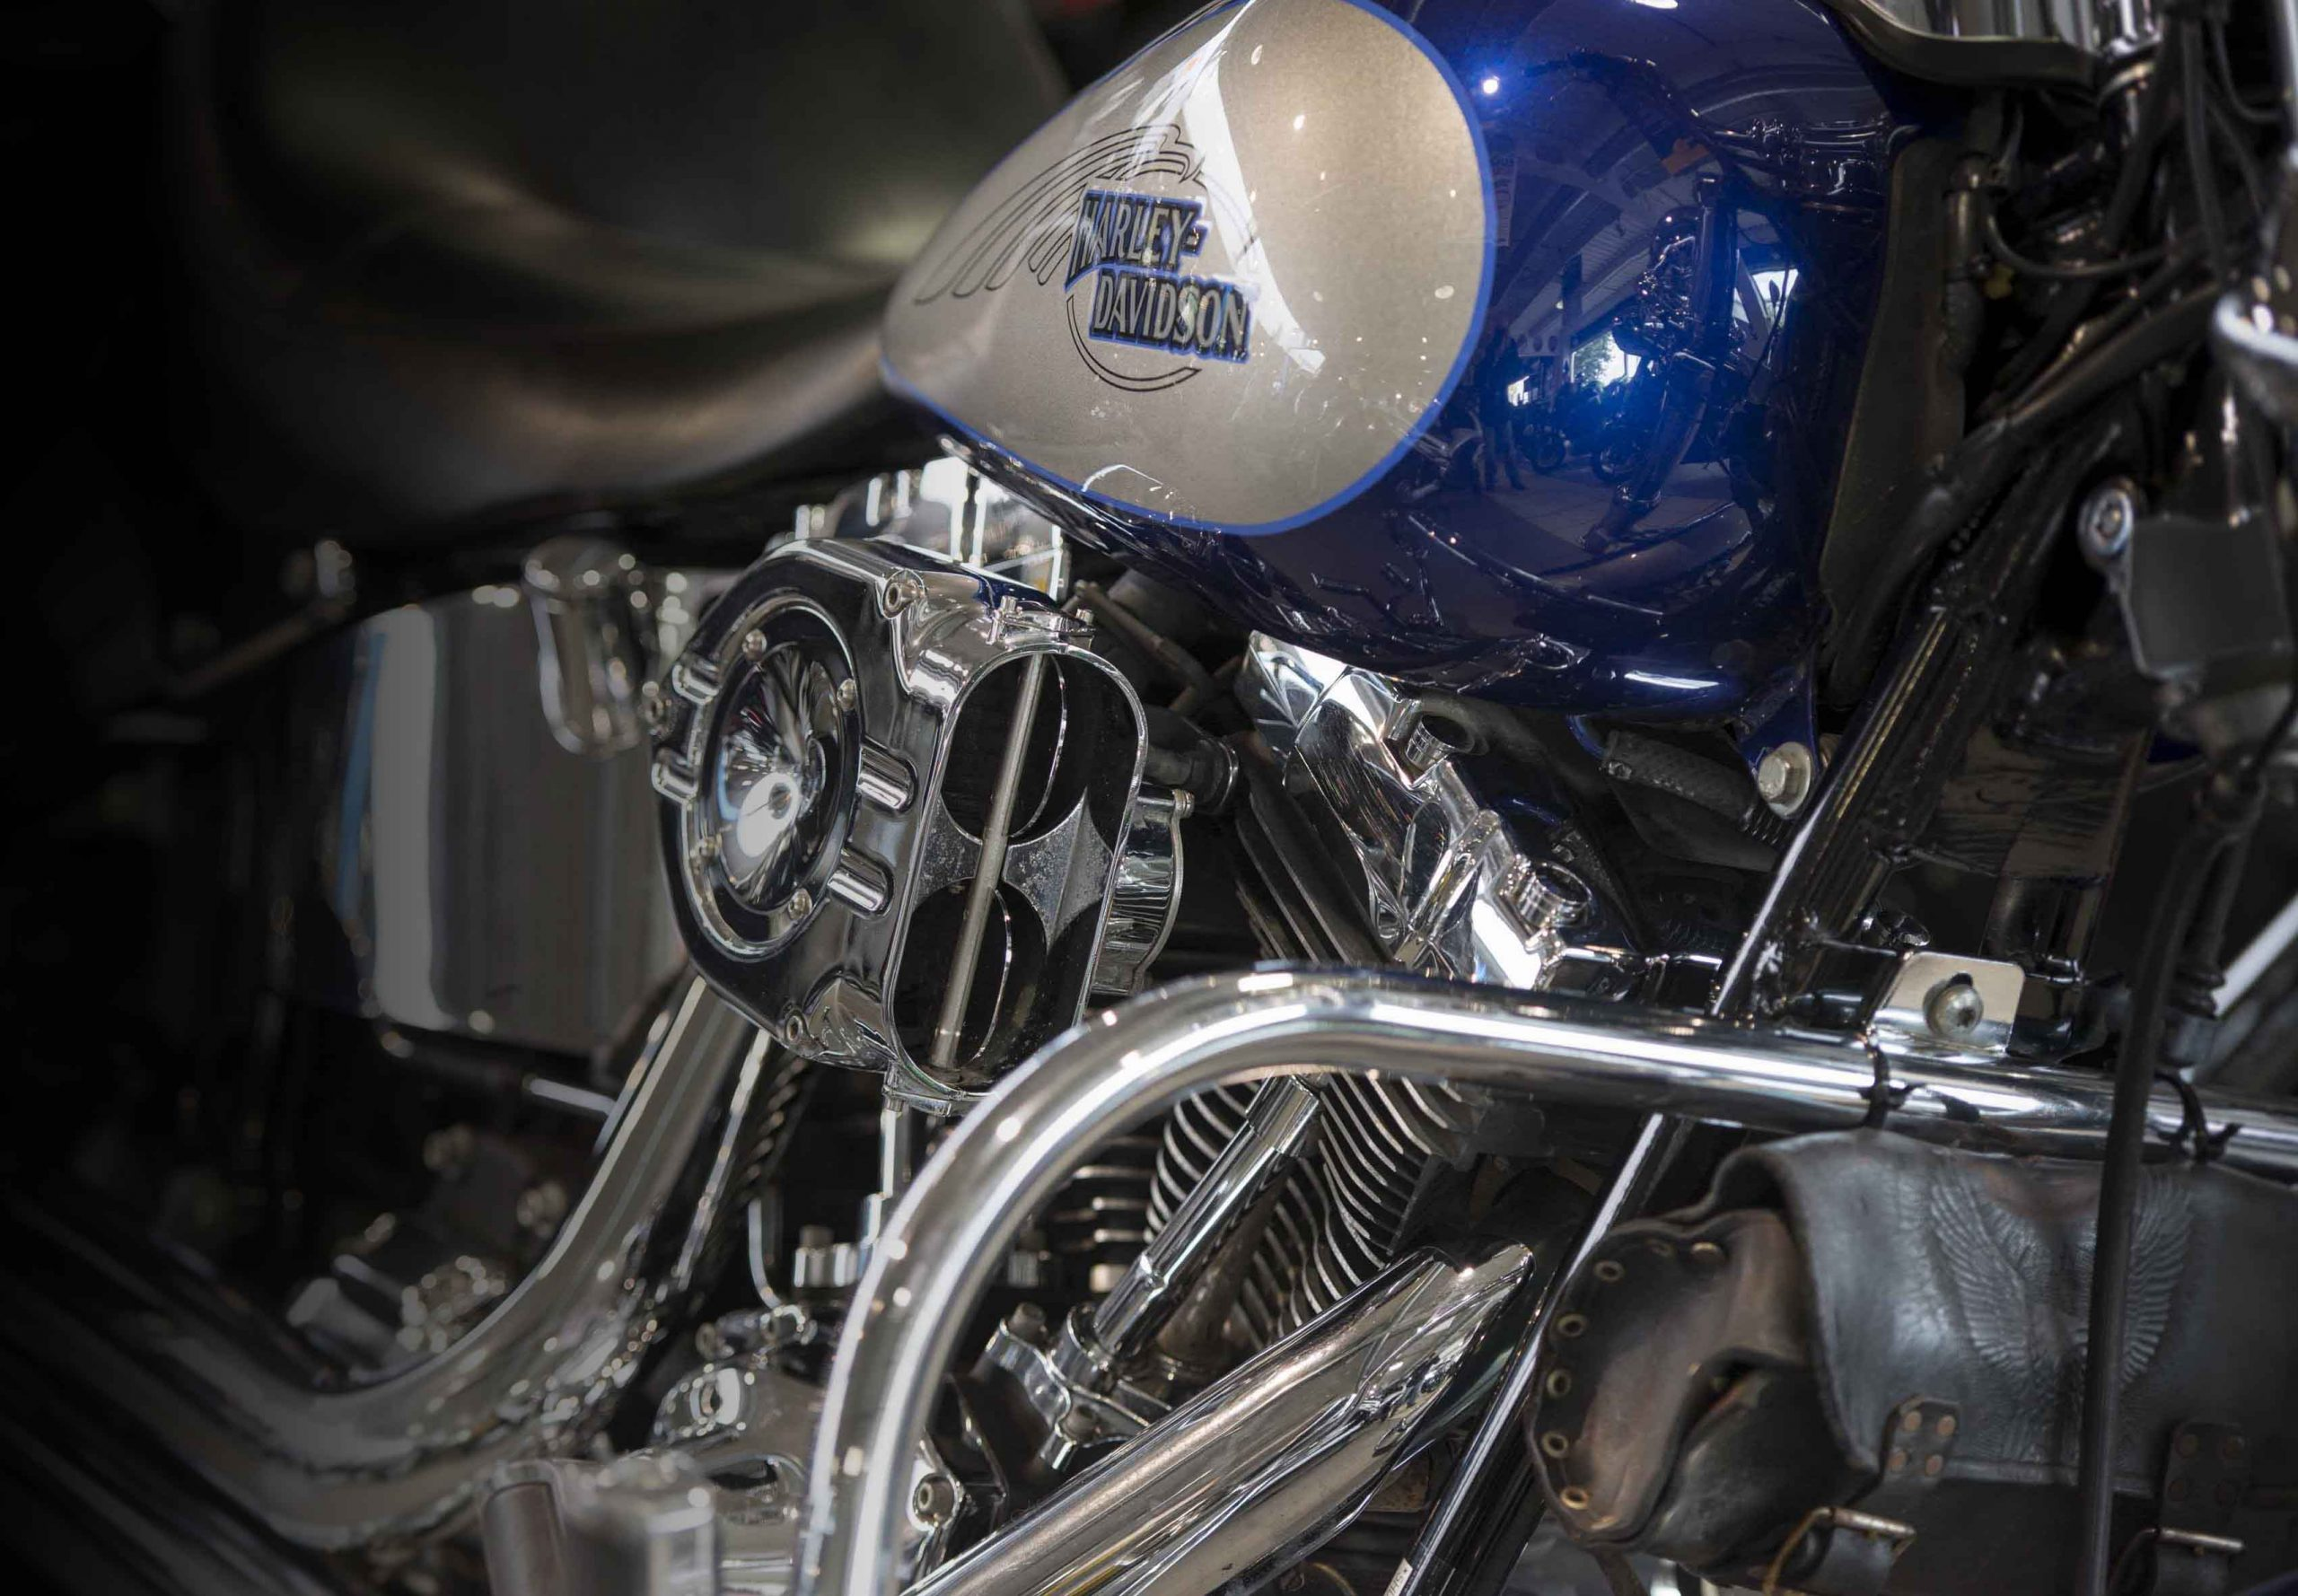 Blue Harley Davidson Bike